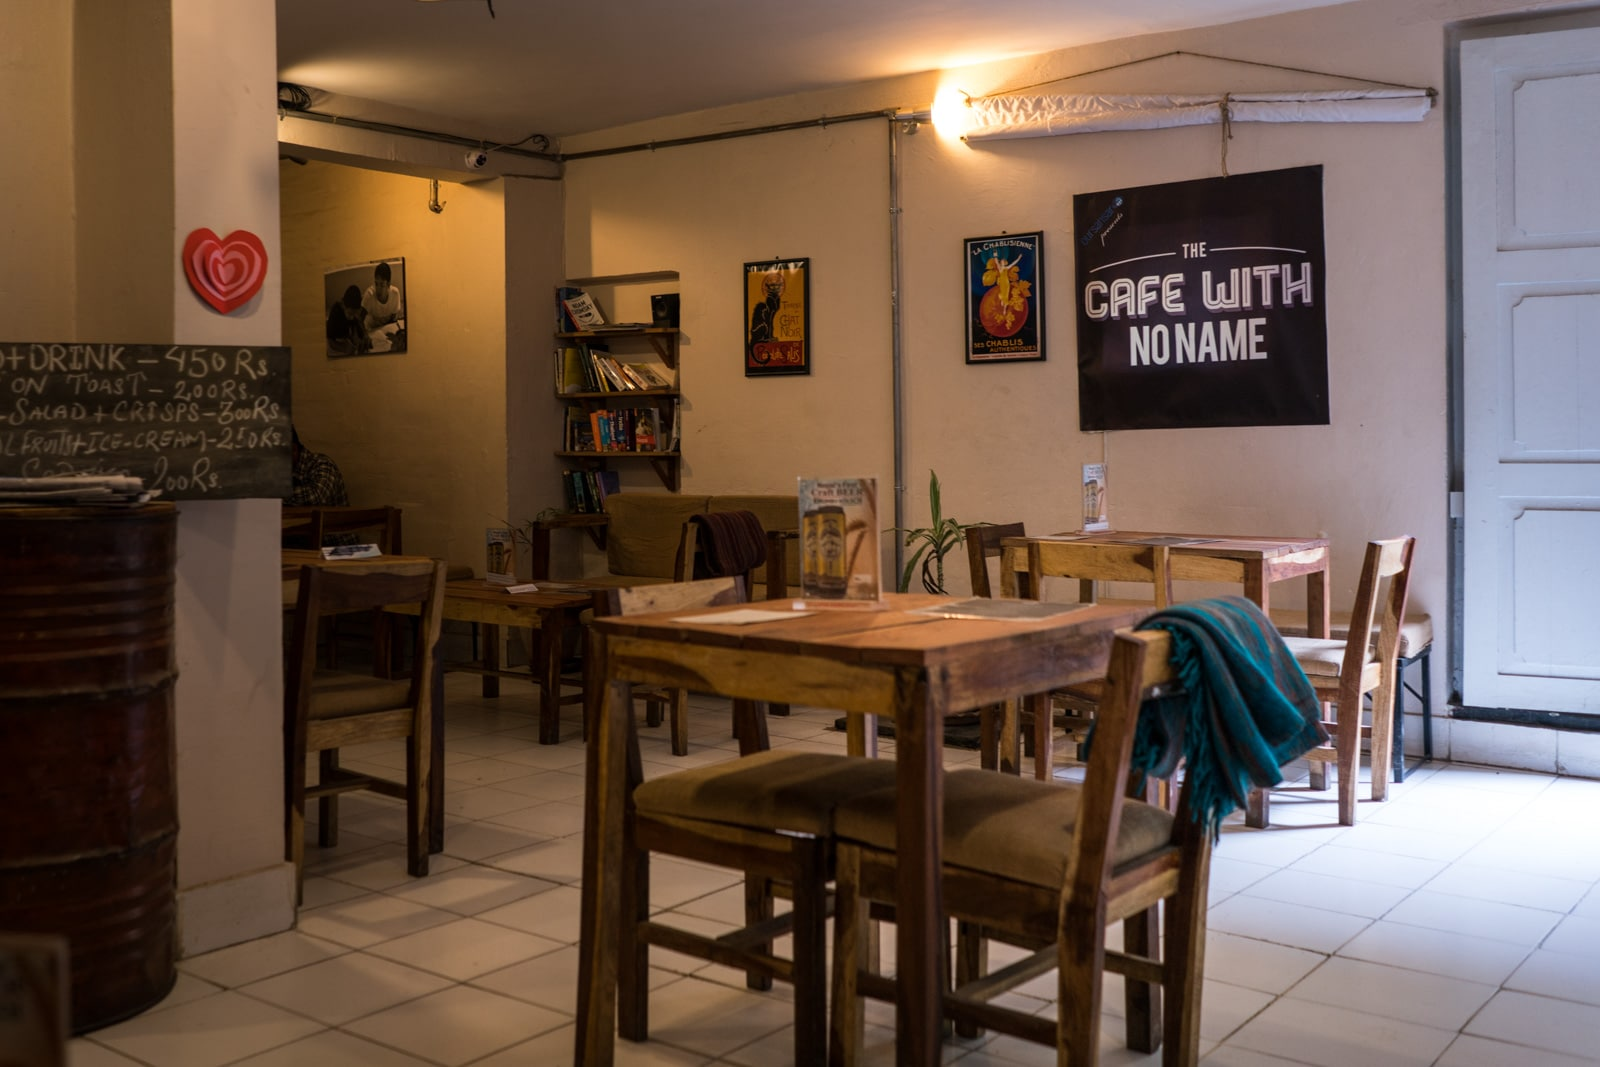 Places for digital nomads to work in Thamel neighborhood, Kathmandu, Nepal - Cafe with No Name interior - Lost With Purpose travel blog